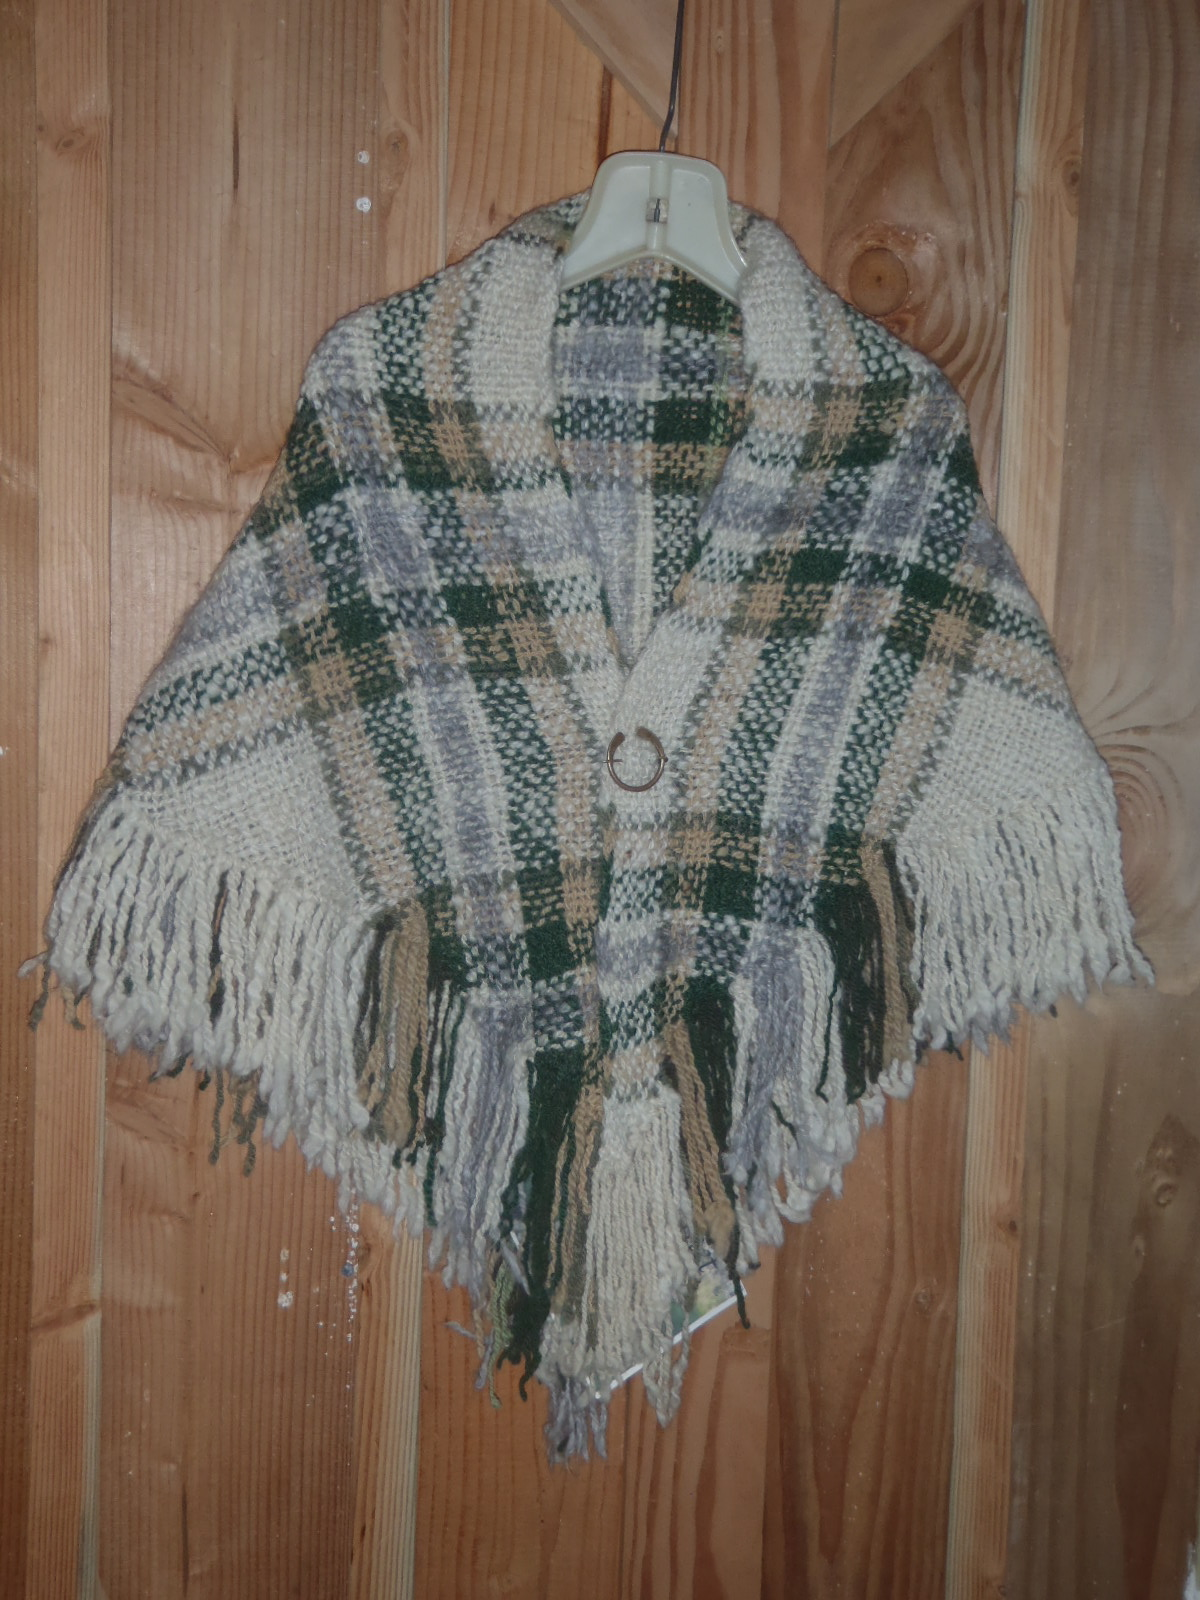 Photo of the green and gold shawl.